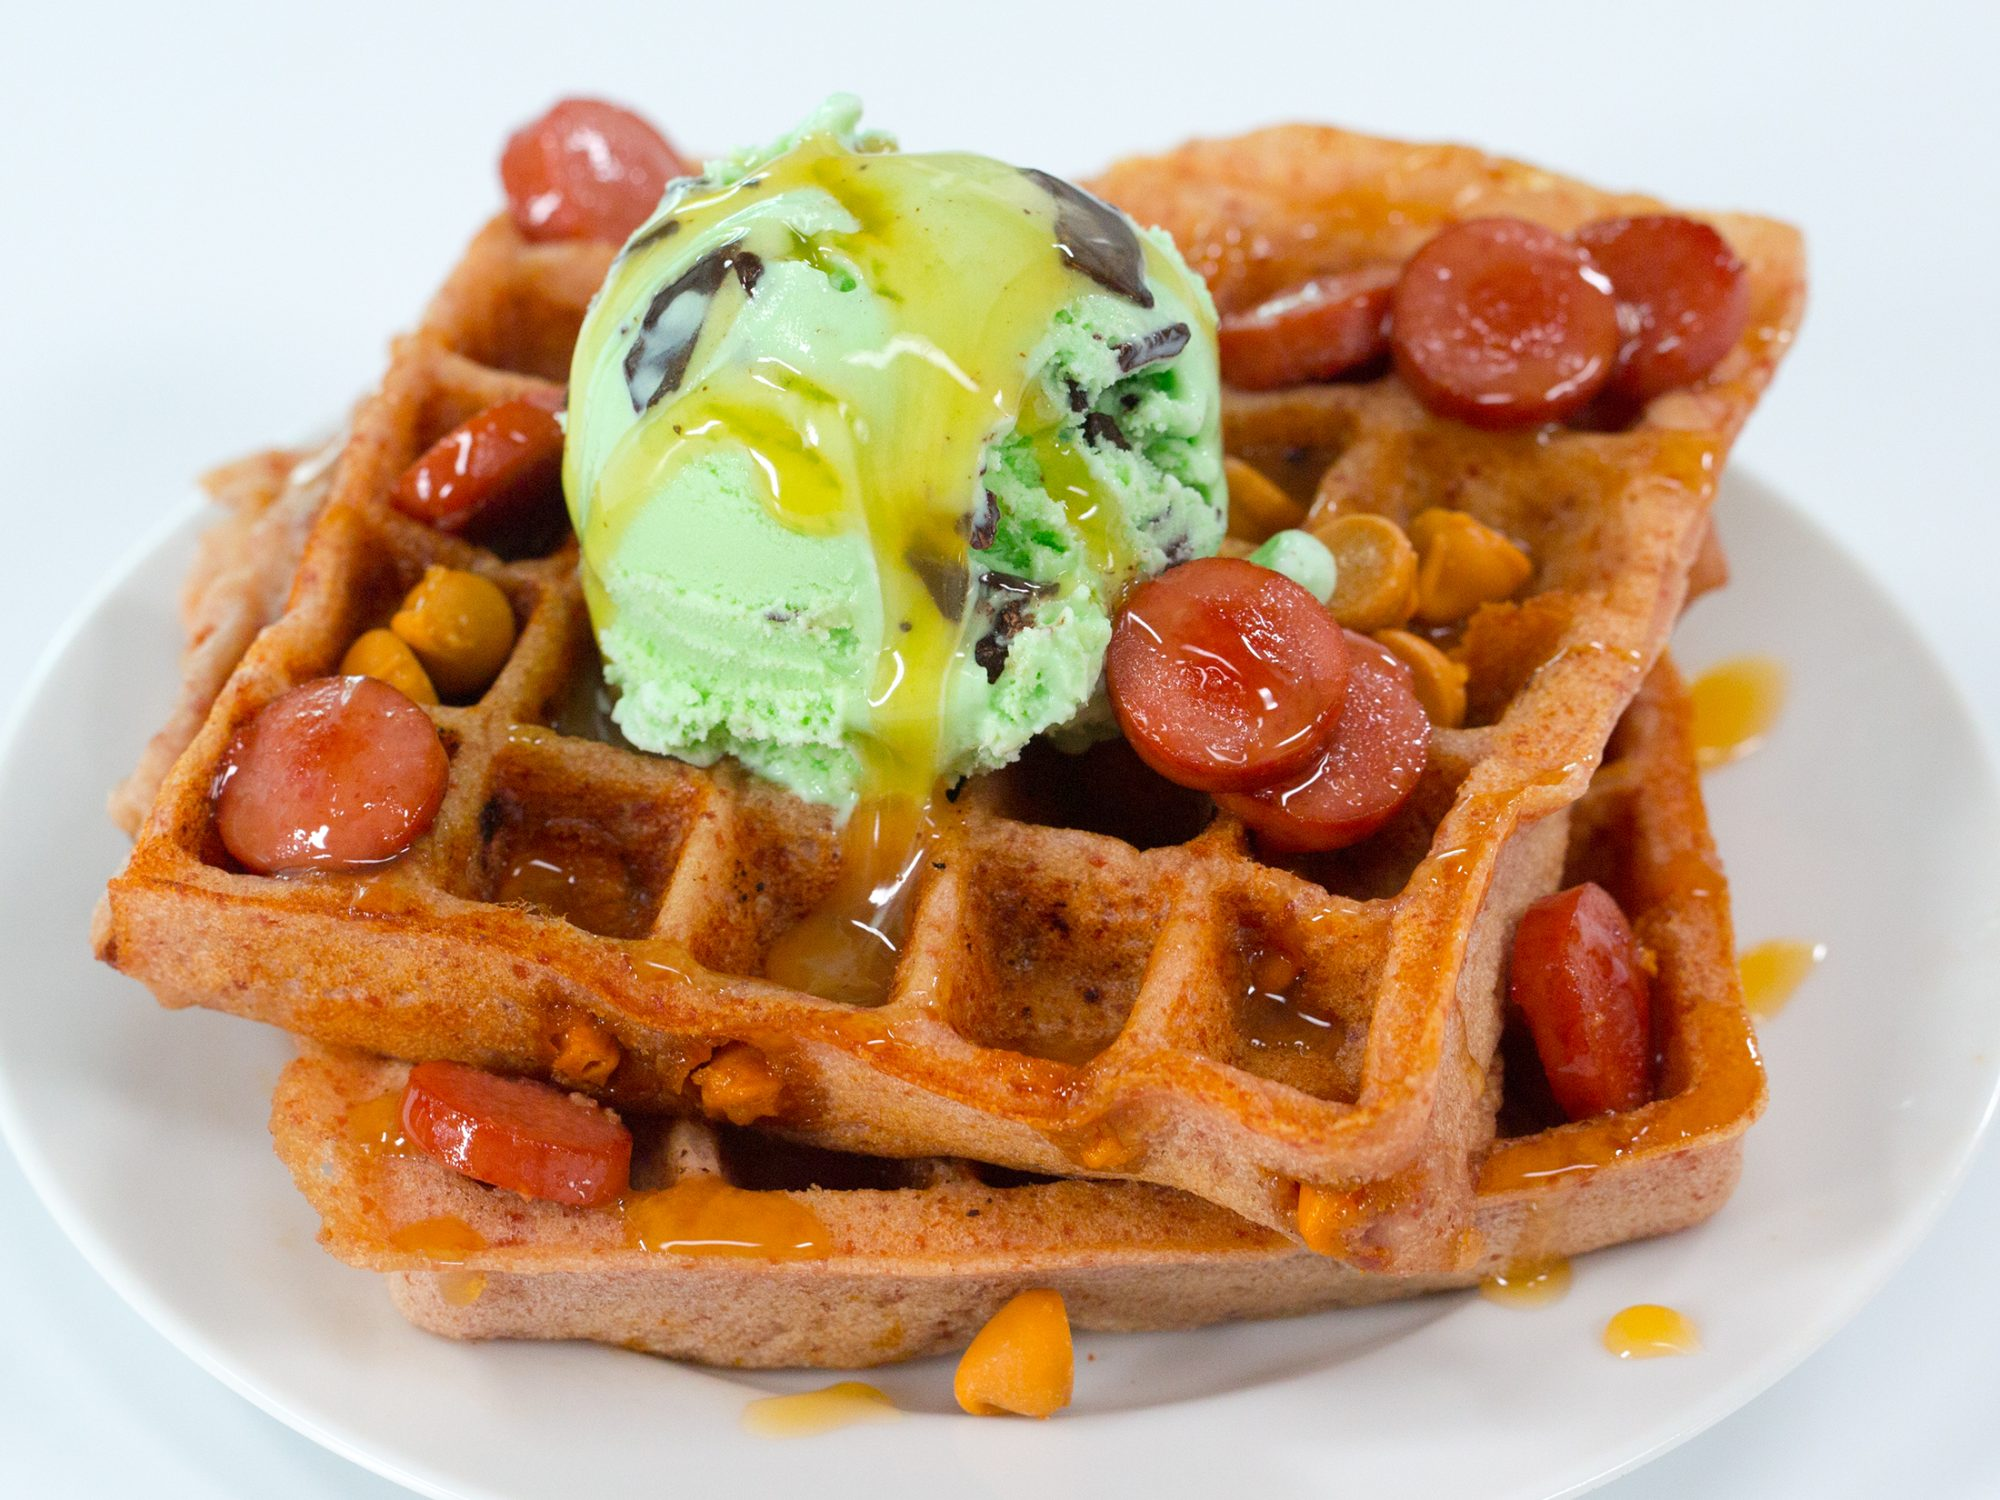 Butterscotch Hot Dog Waffle image